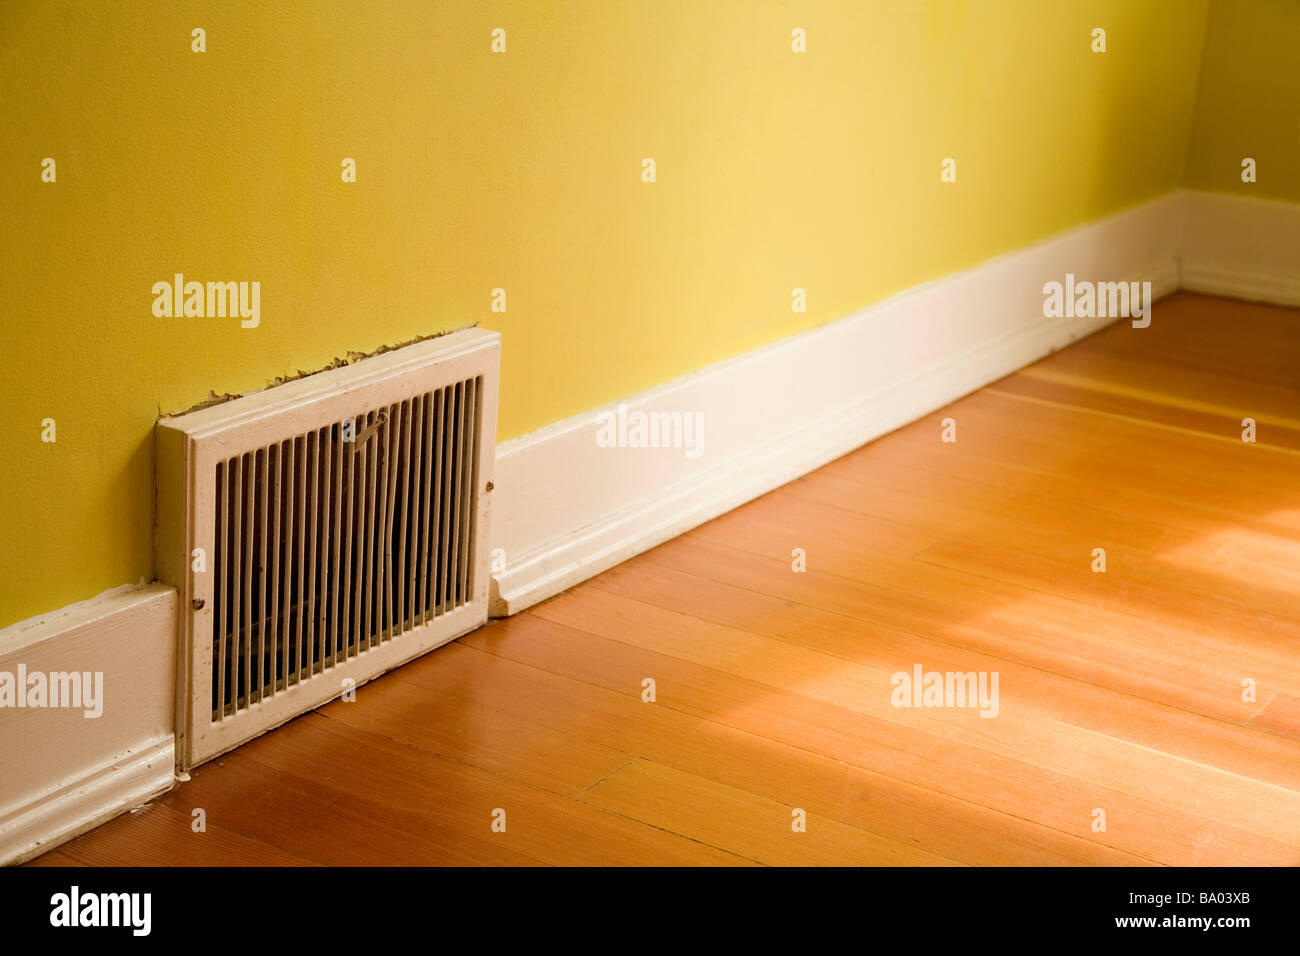 Air Vent House Stock Photos & Air Vent House Stock Images - Alamy